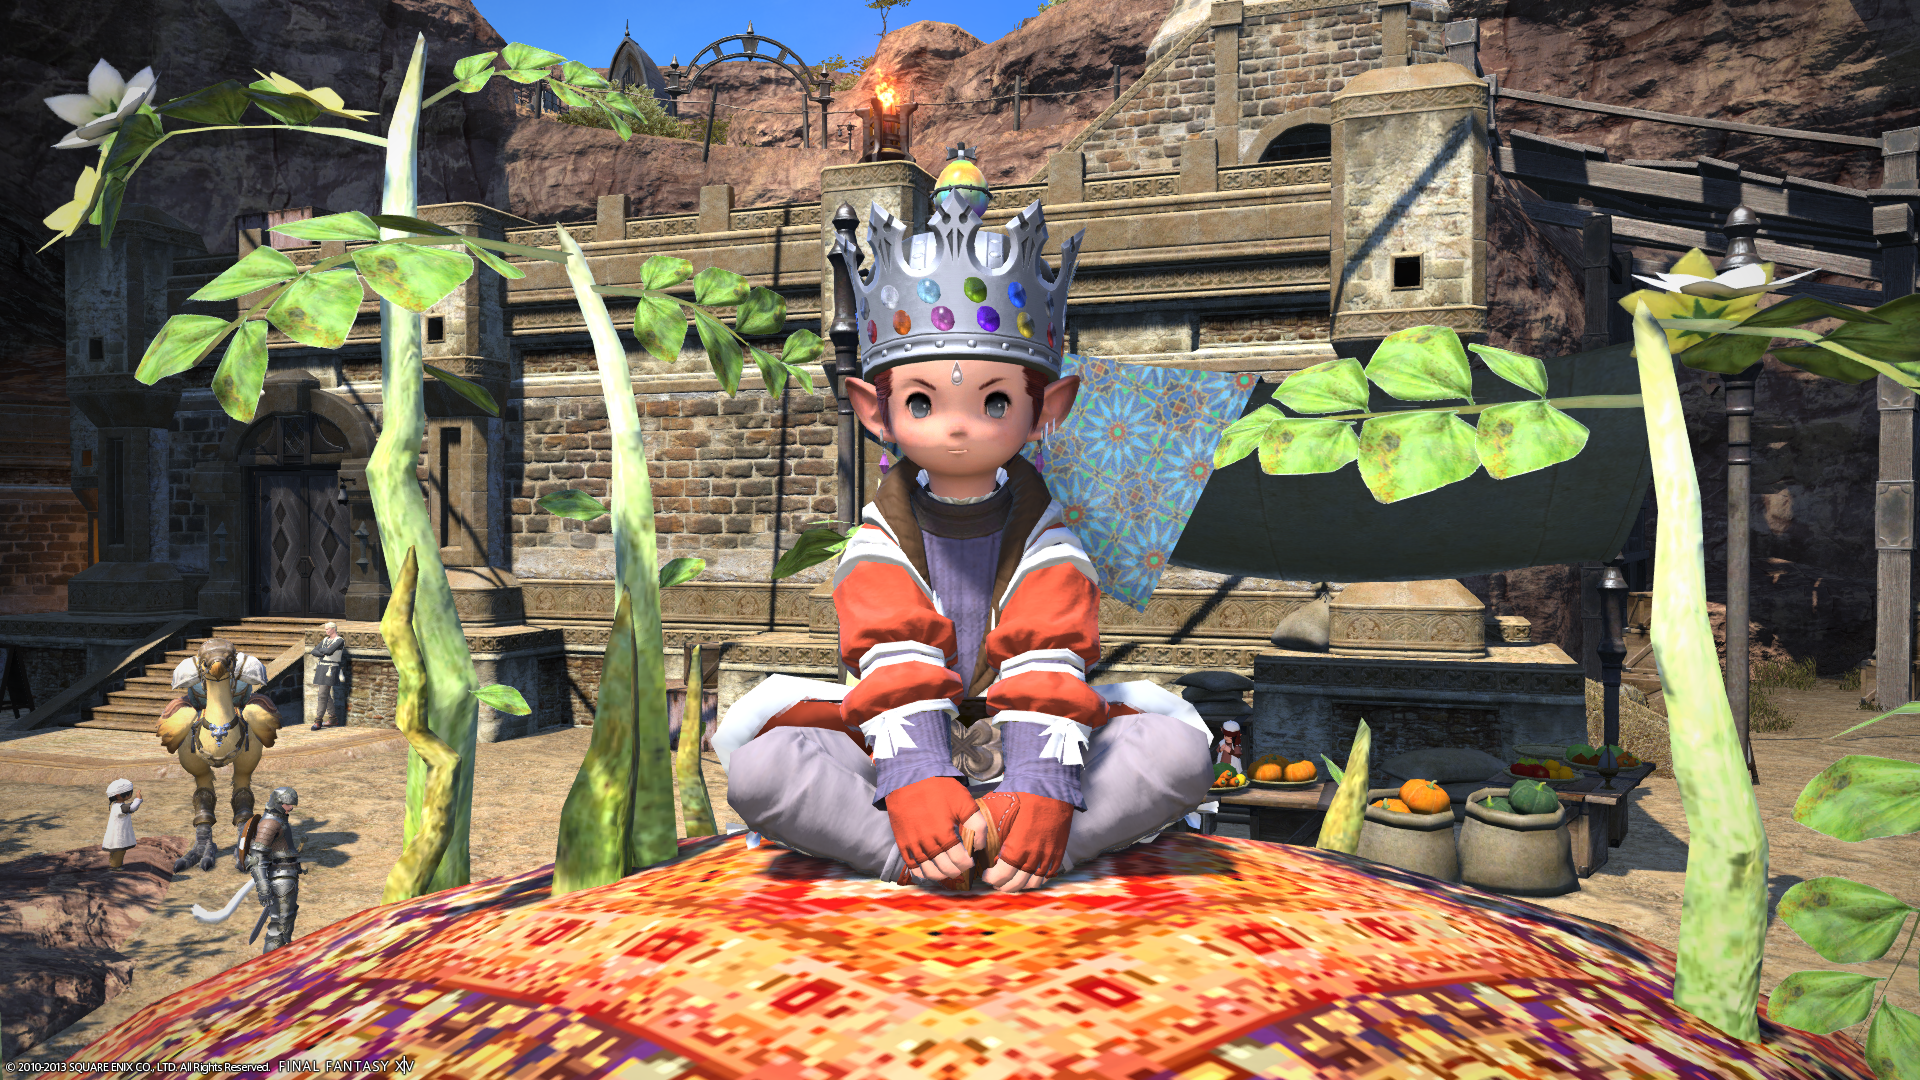 nama ffxiv cute fantastic awesome picture this comment cheesecake phase contest wanted just